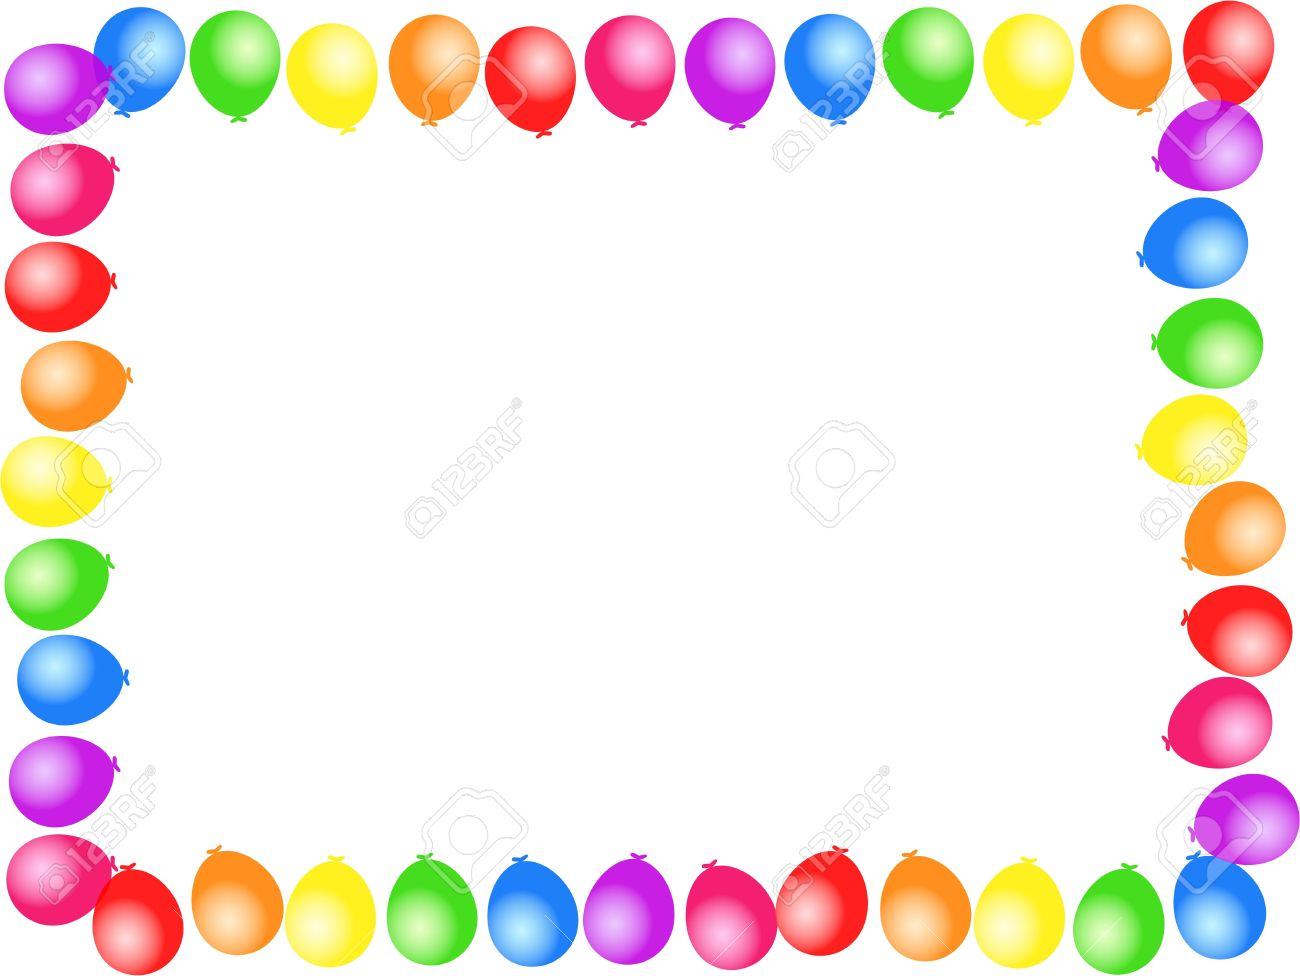 free birthday page borders ; 4592723-colourful-birthday-party-balloon-page-border-design-